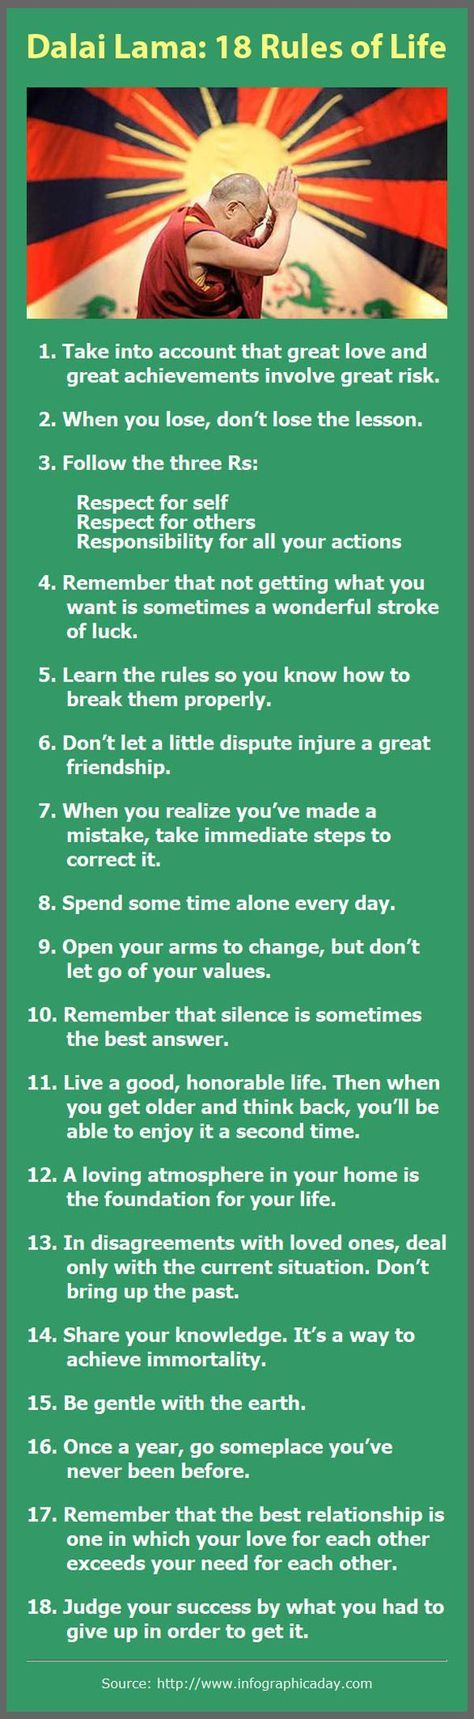 May we all aspire to live every day according to these principles.